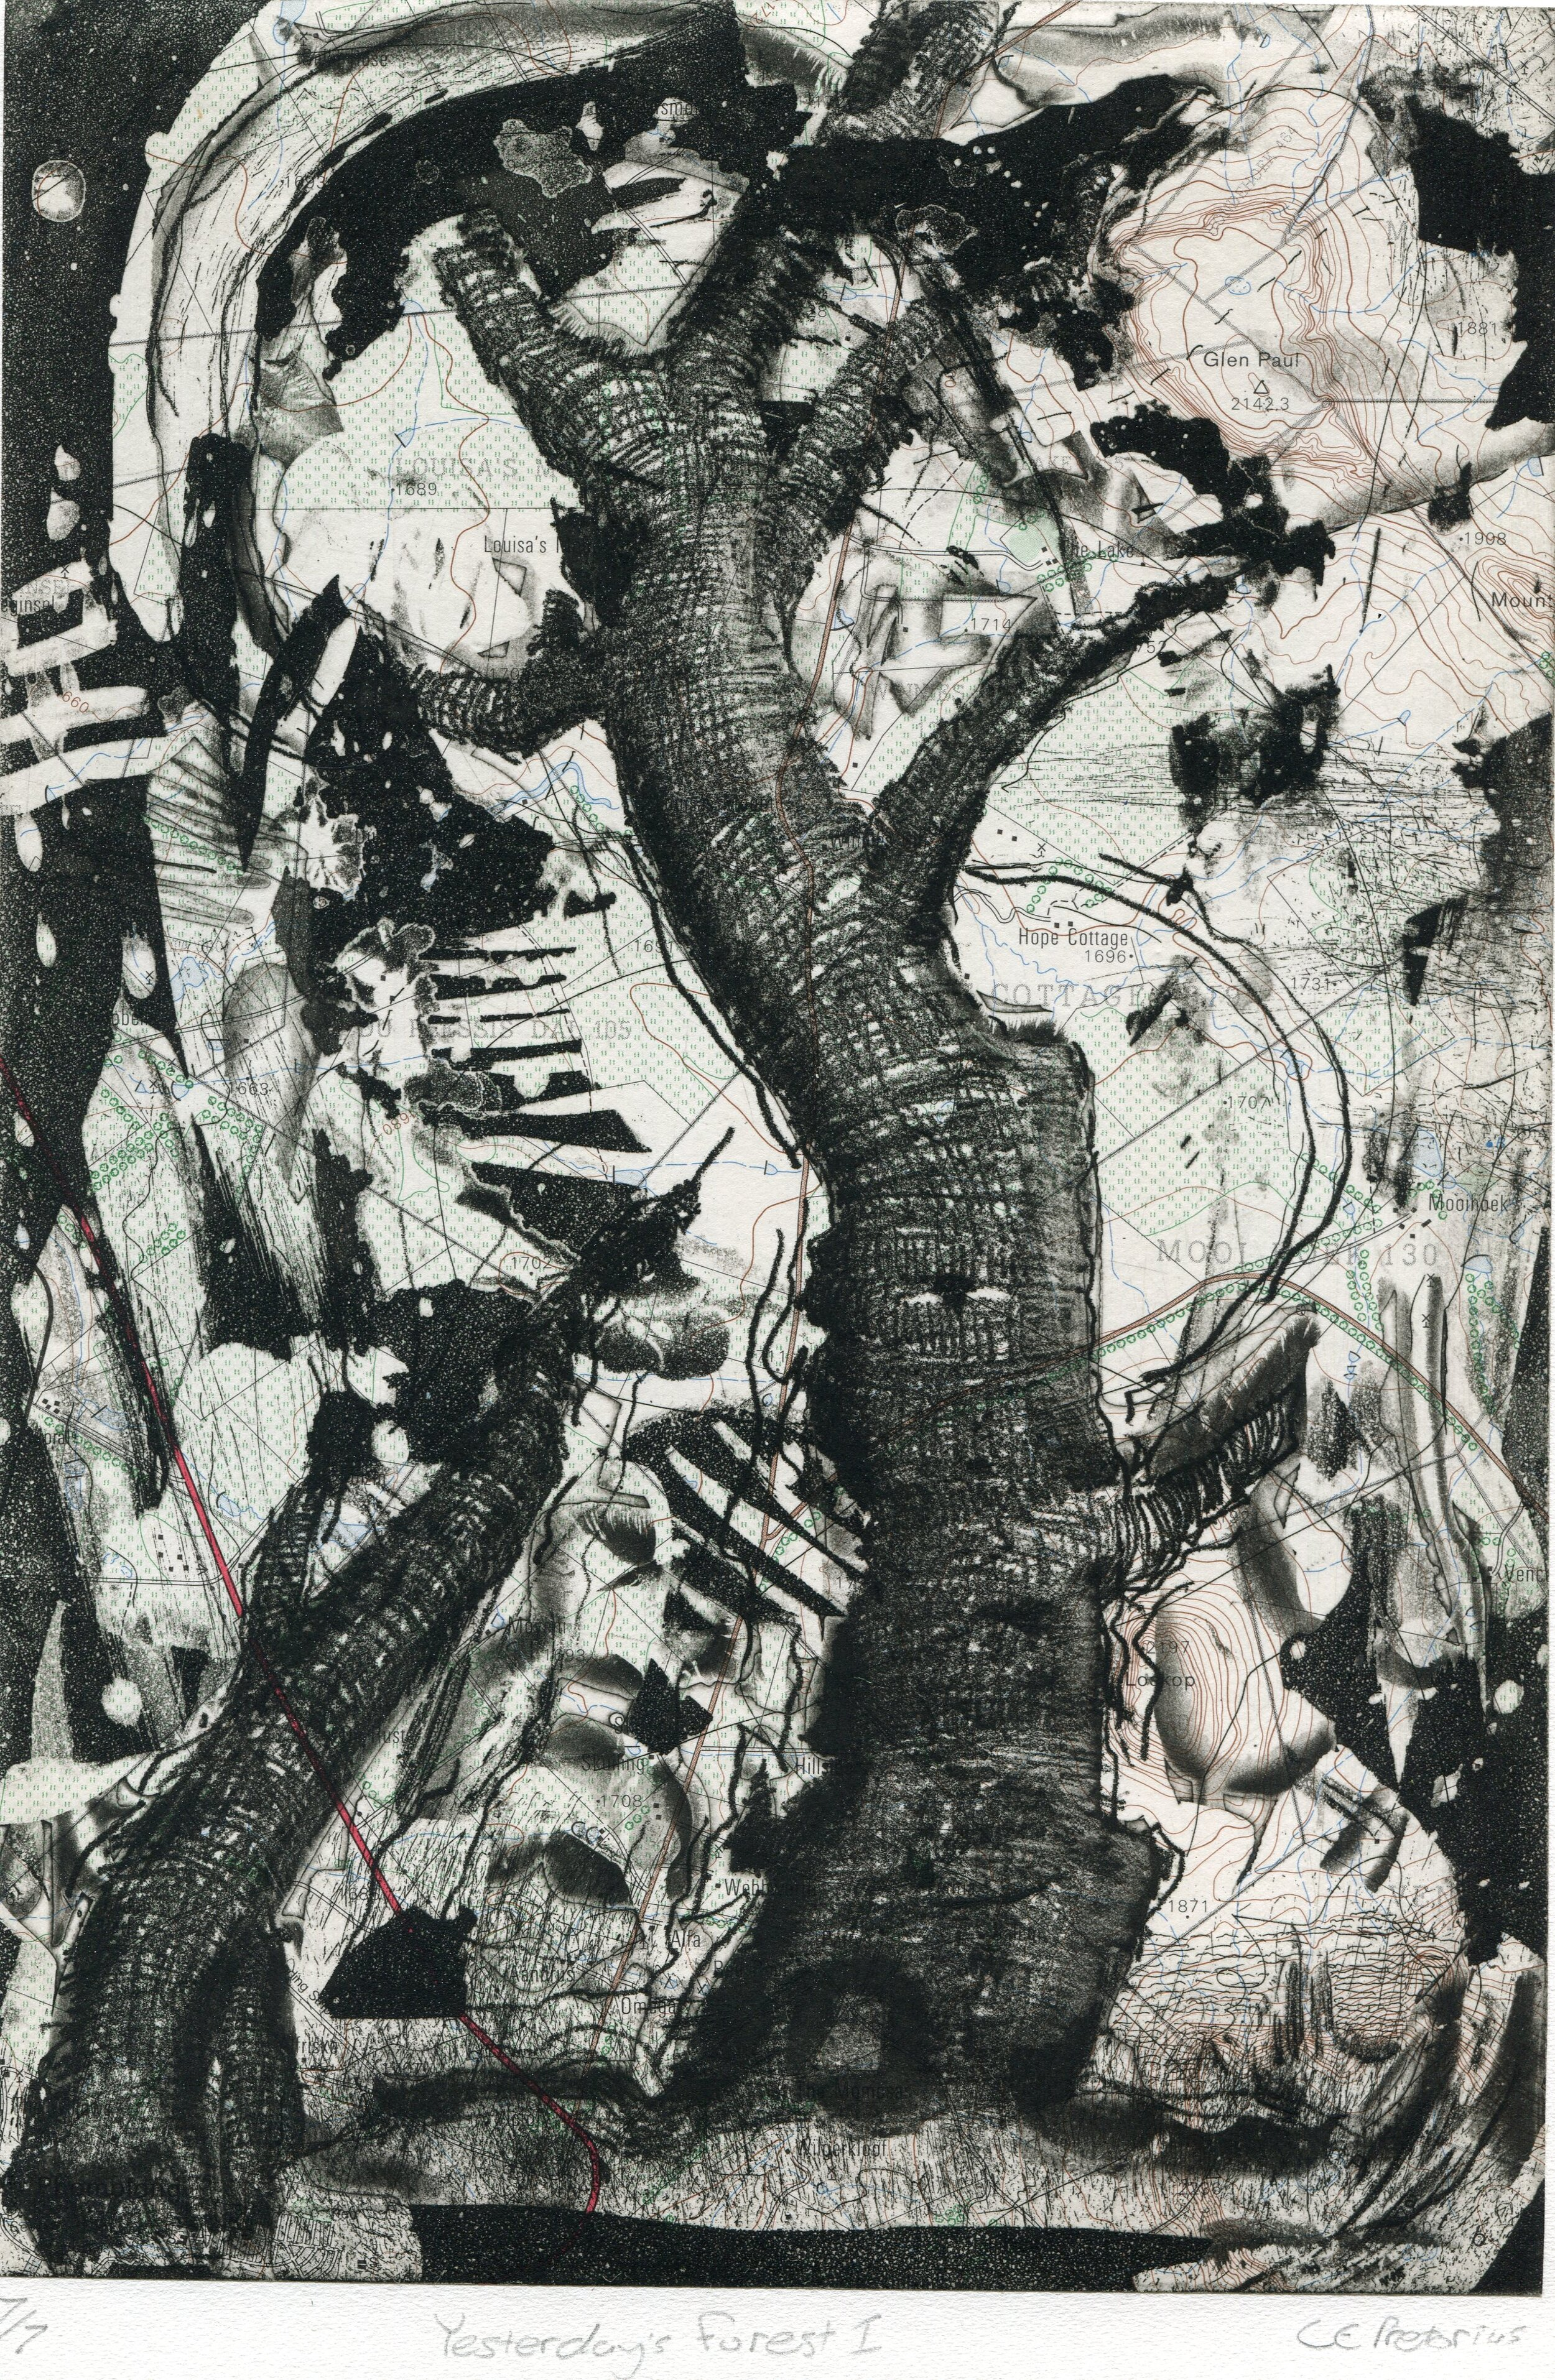 57c  Eloff Pretorius  Yesterday's forest 1  etching and chine-collee on paper